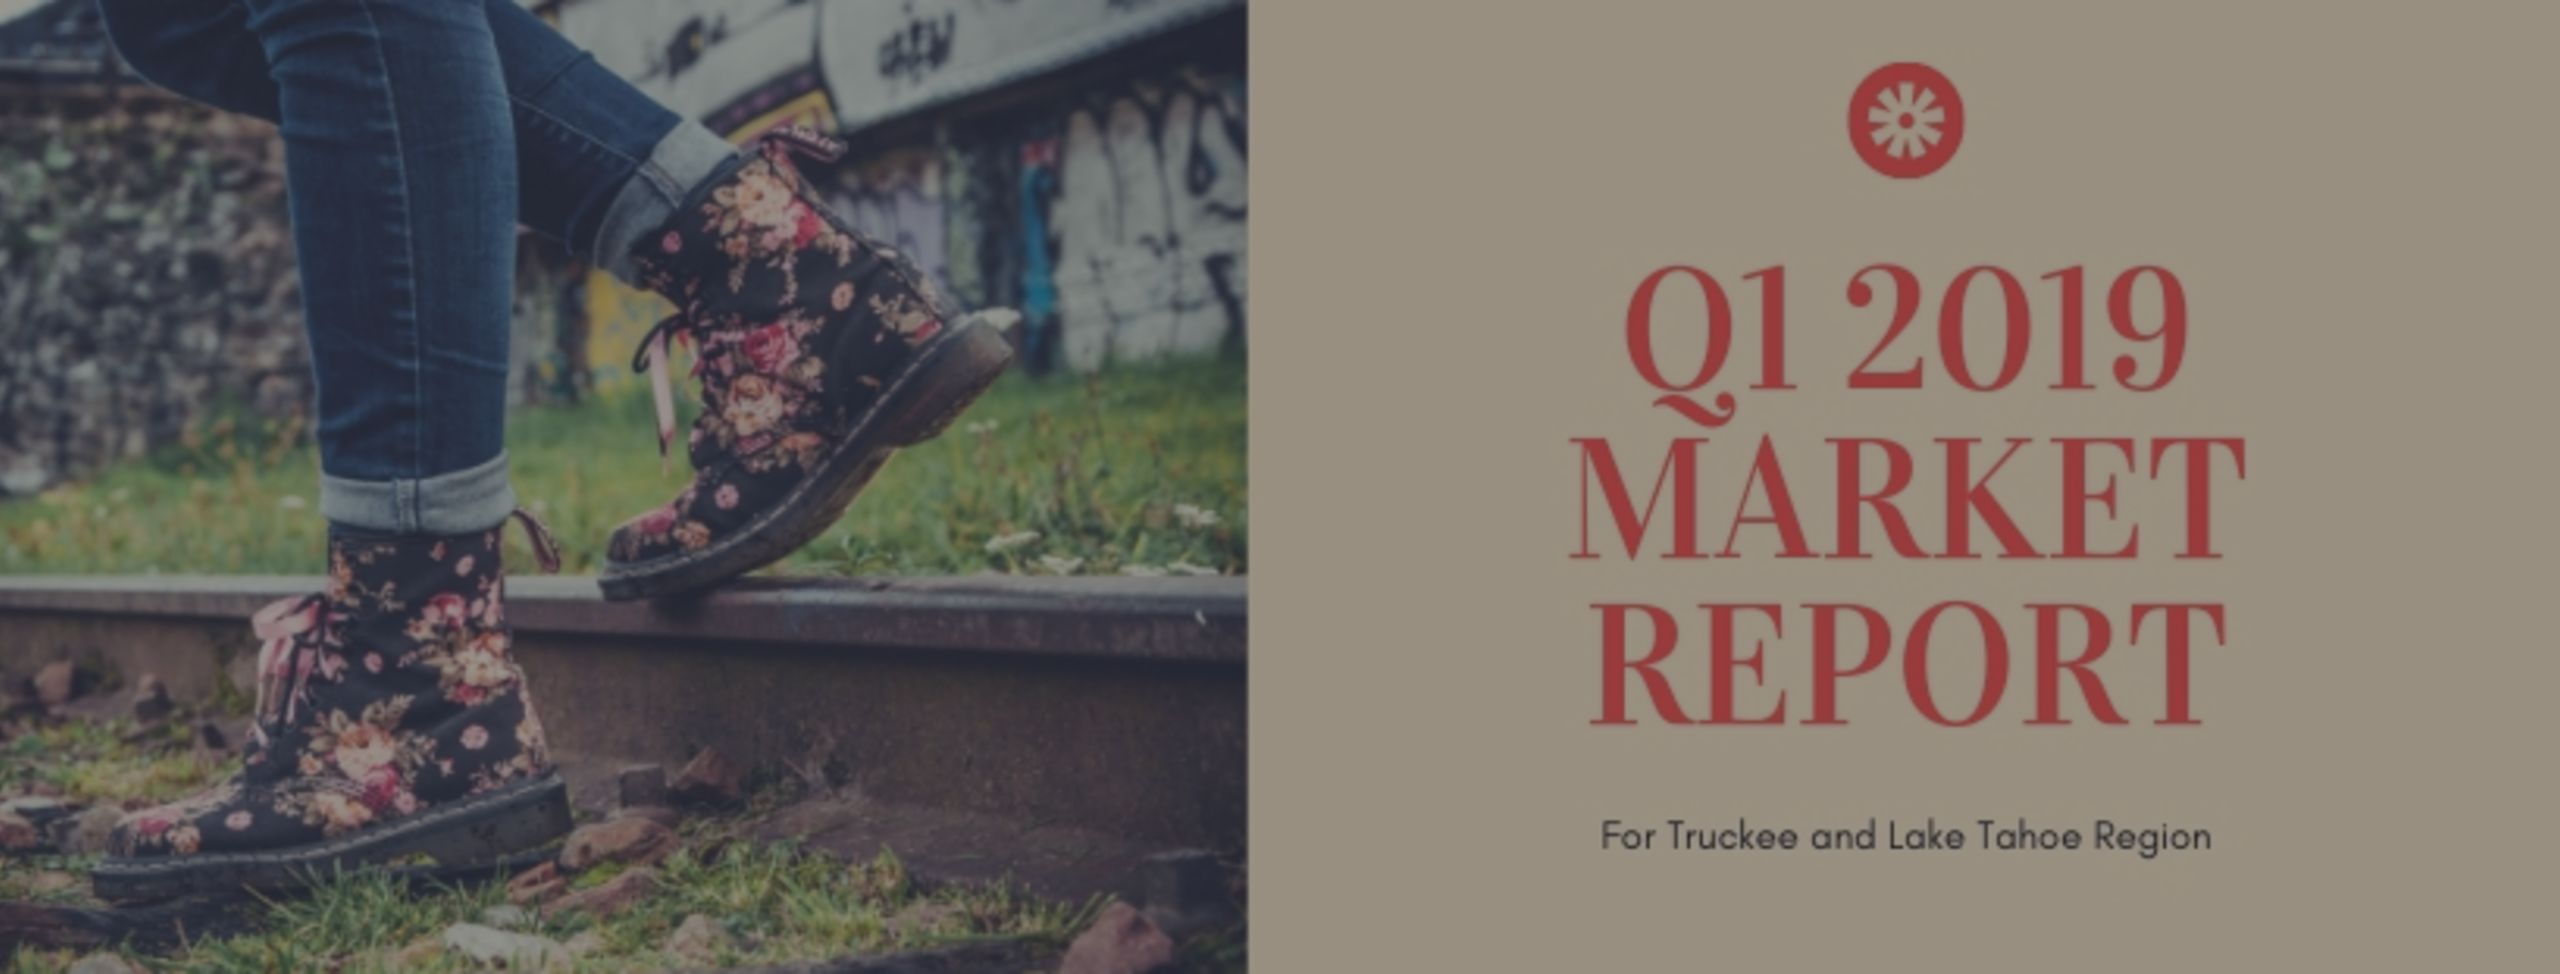 Truckee Tahoe Real Estate Market Update for Q1 2019